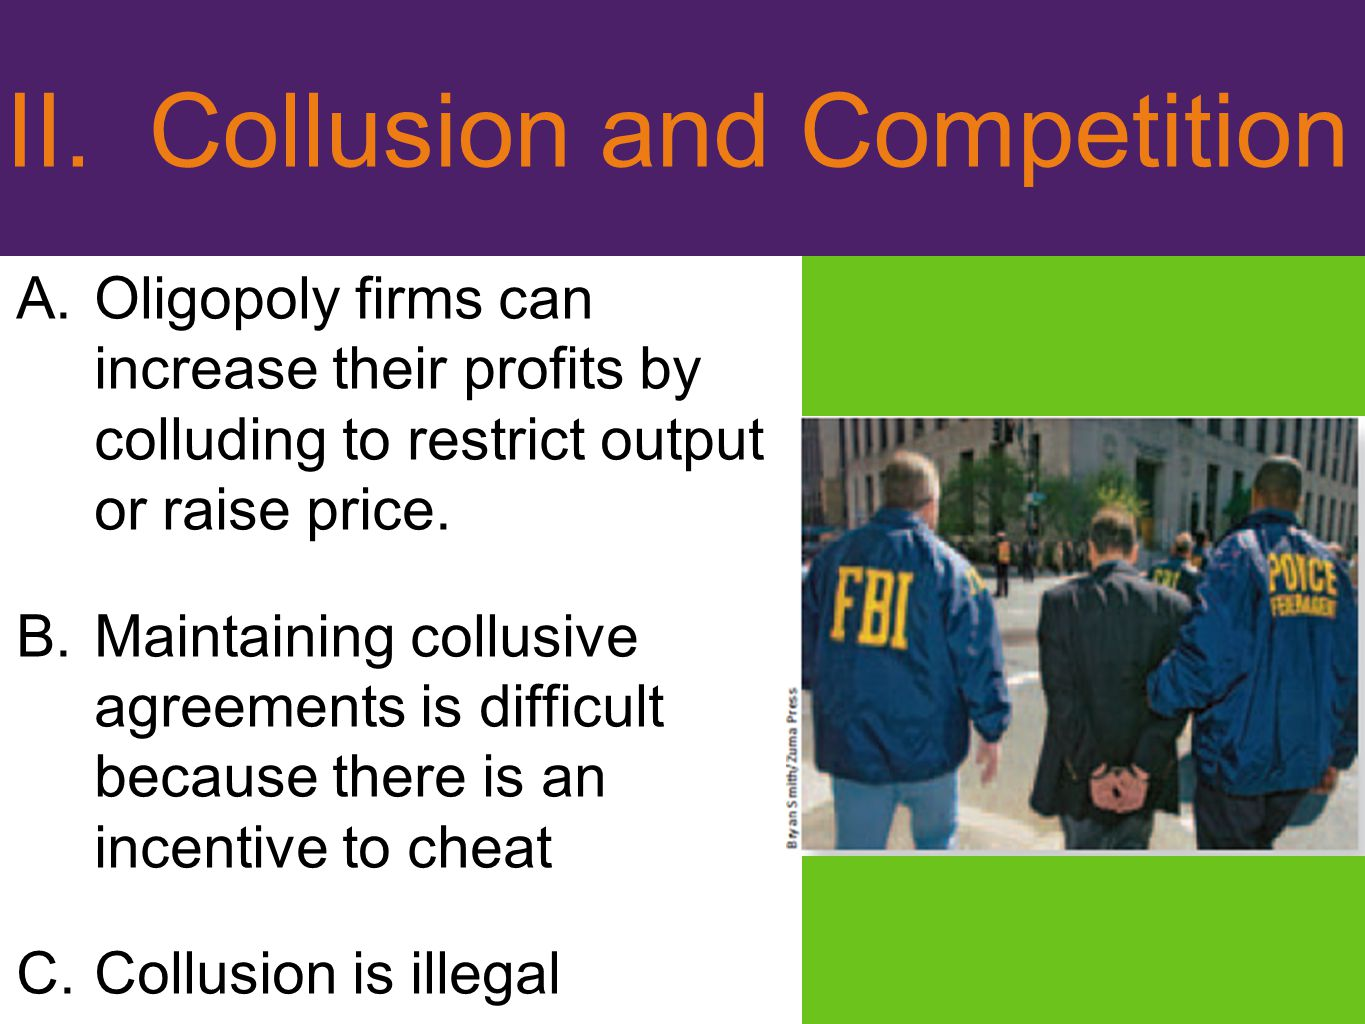 II. Collusion and Competition